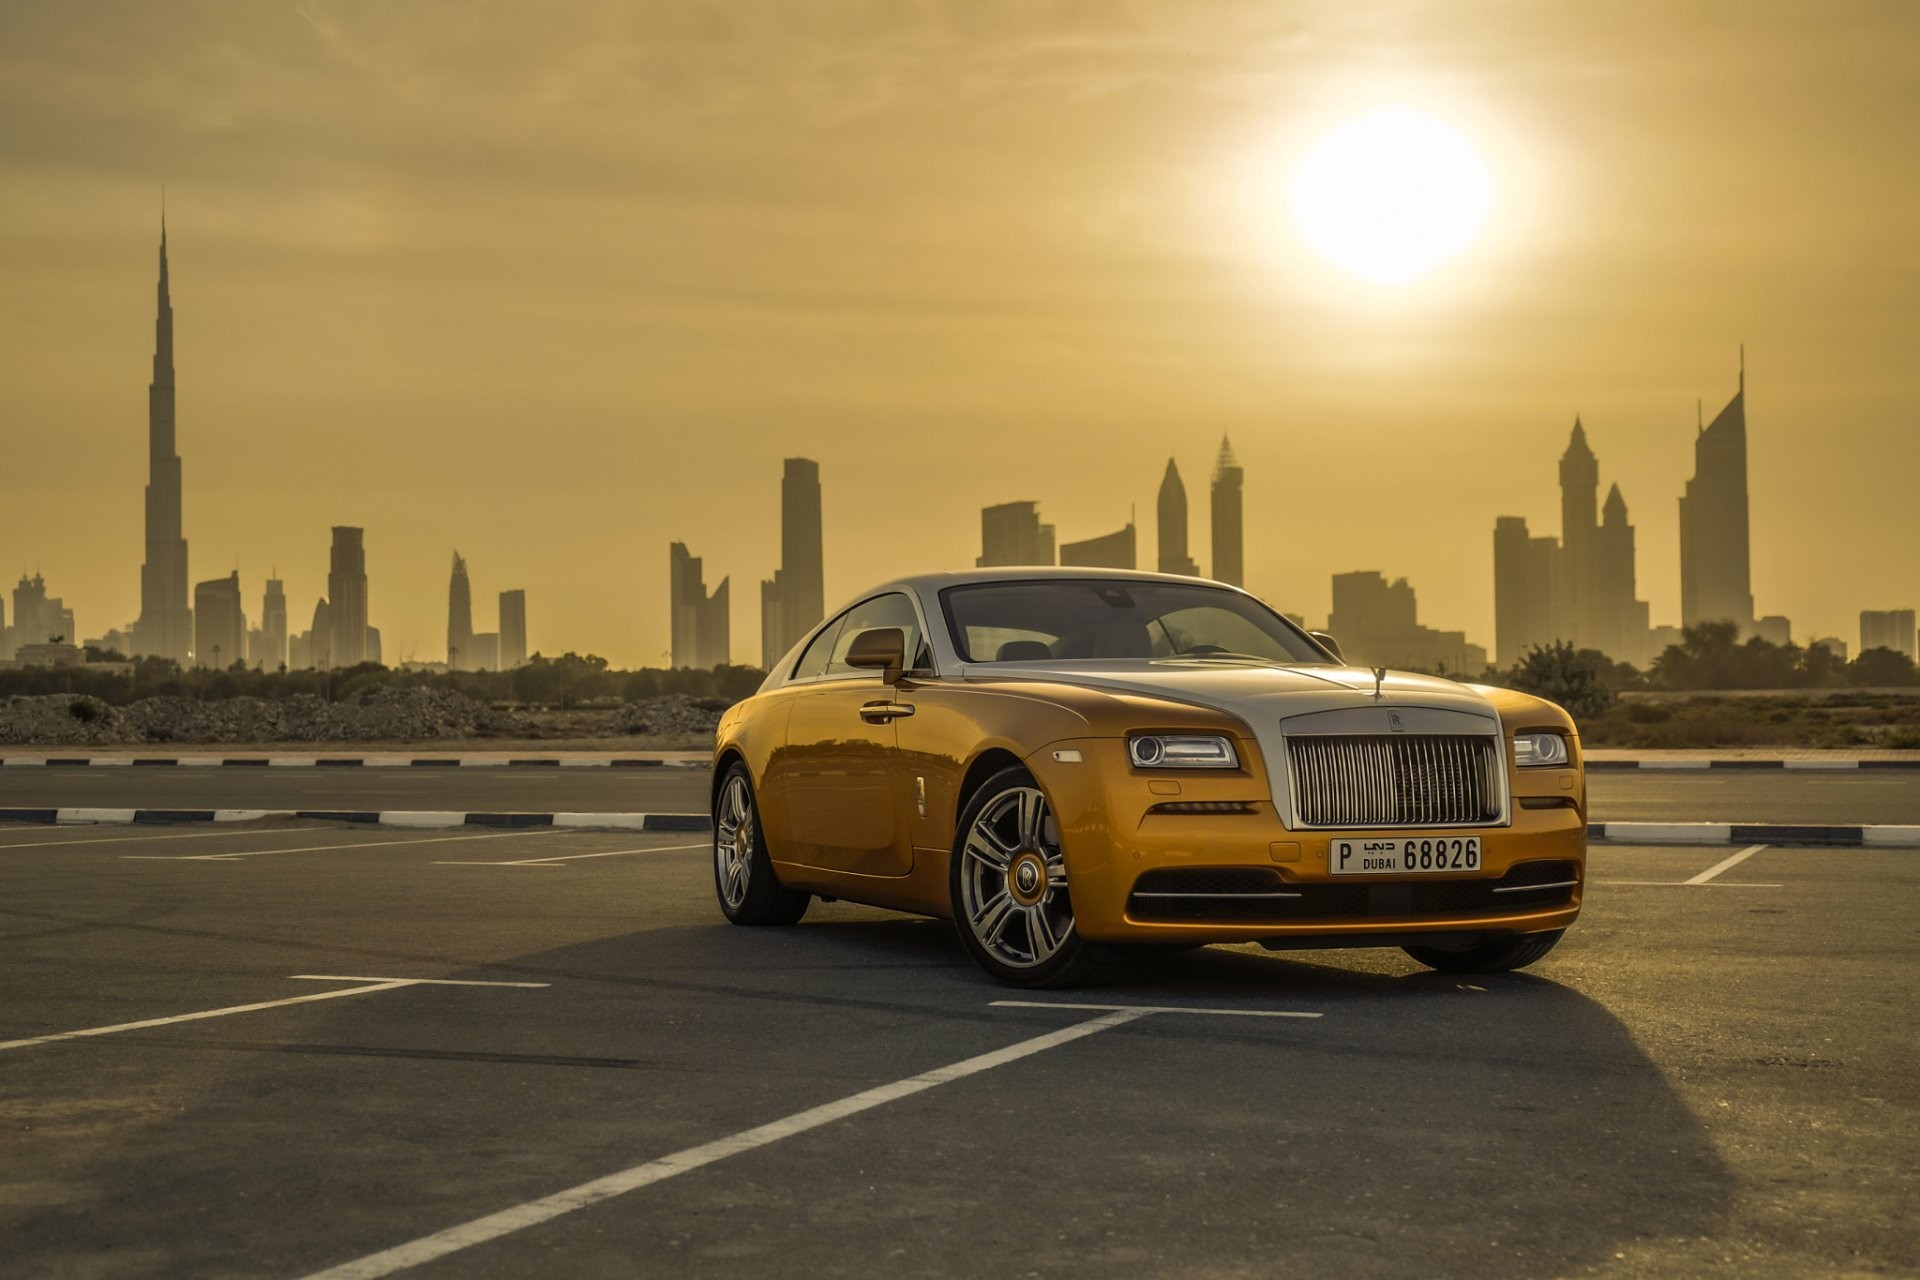 Wallpapers Tagged With GOLD | GOLD Car Wallpapers, Images